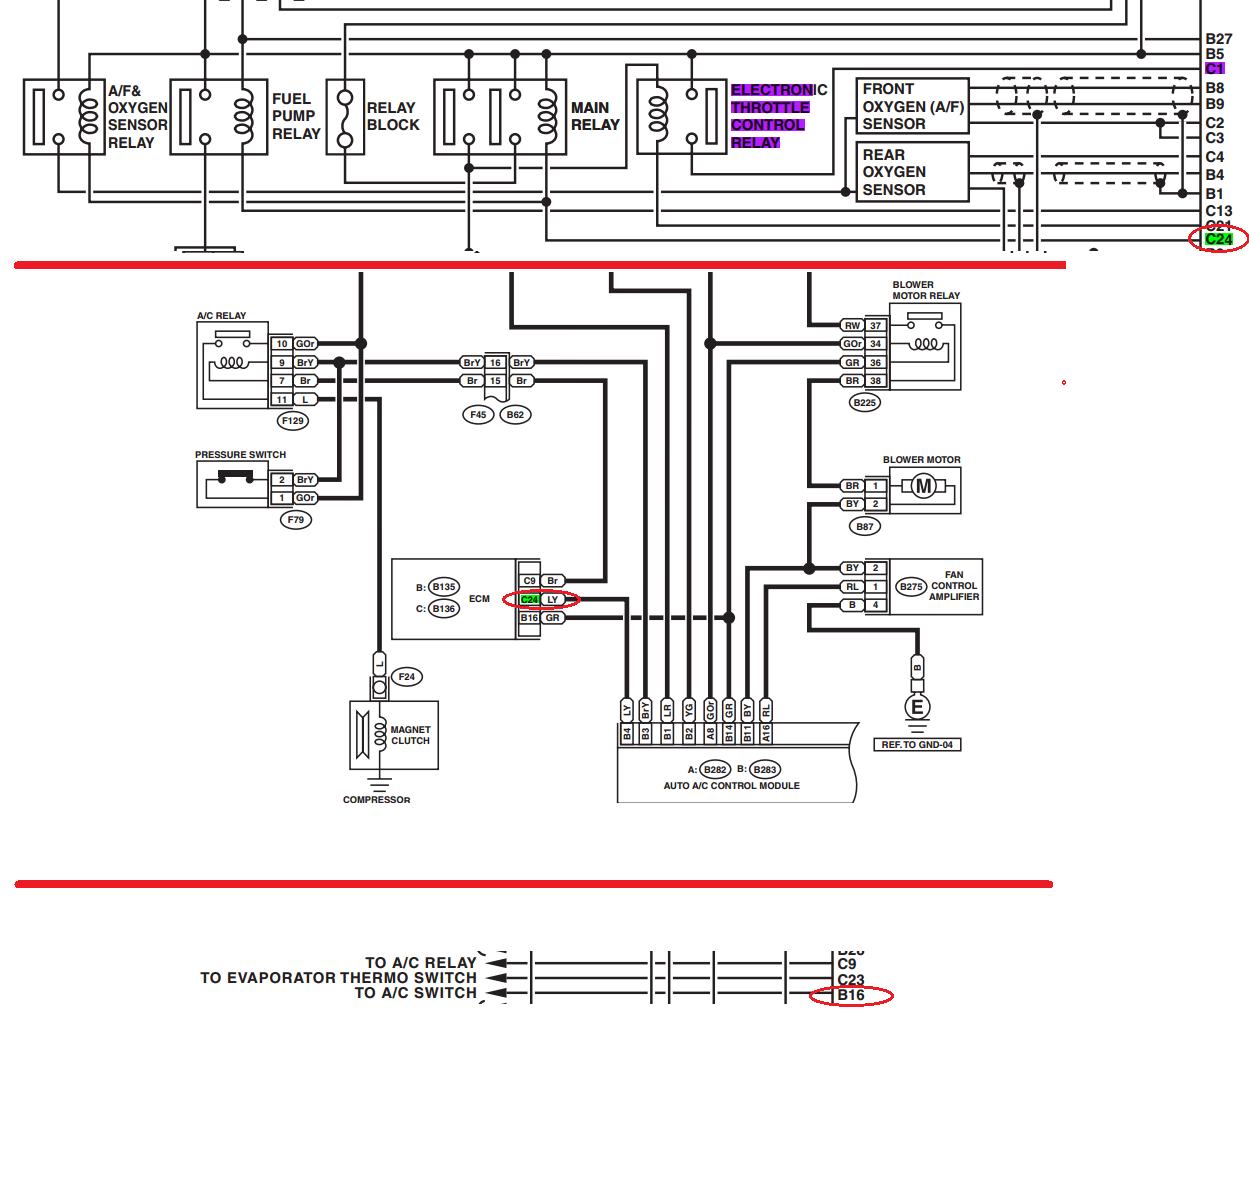 Ac Compressor Wont Turn On Not Low Refrigerant 07 Sti Nasioc Subaru Wiring Diagram This Image Has Been Resized Click Bar To View The Full Original Is Sized 1249x1182